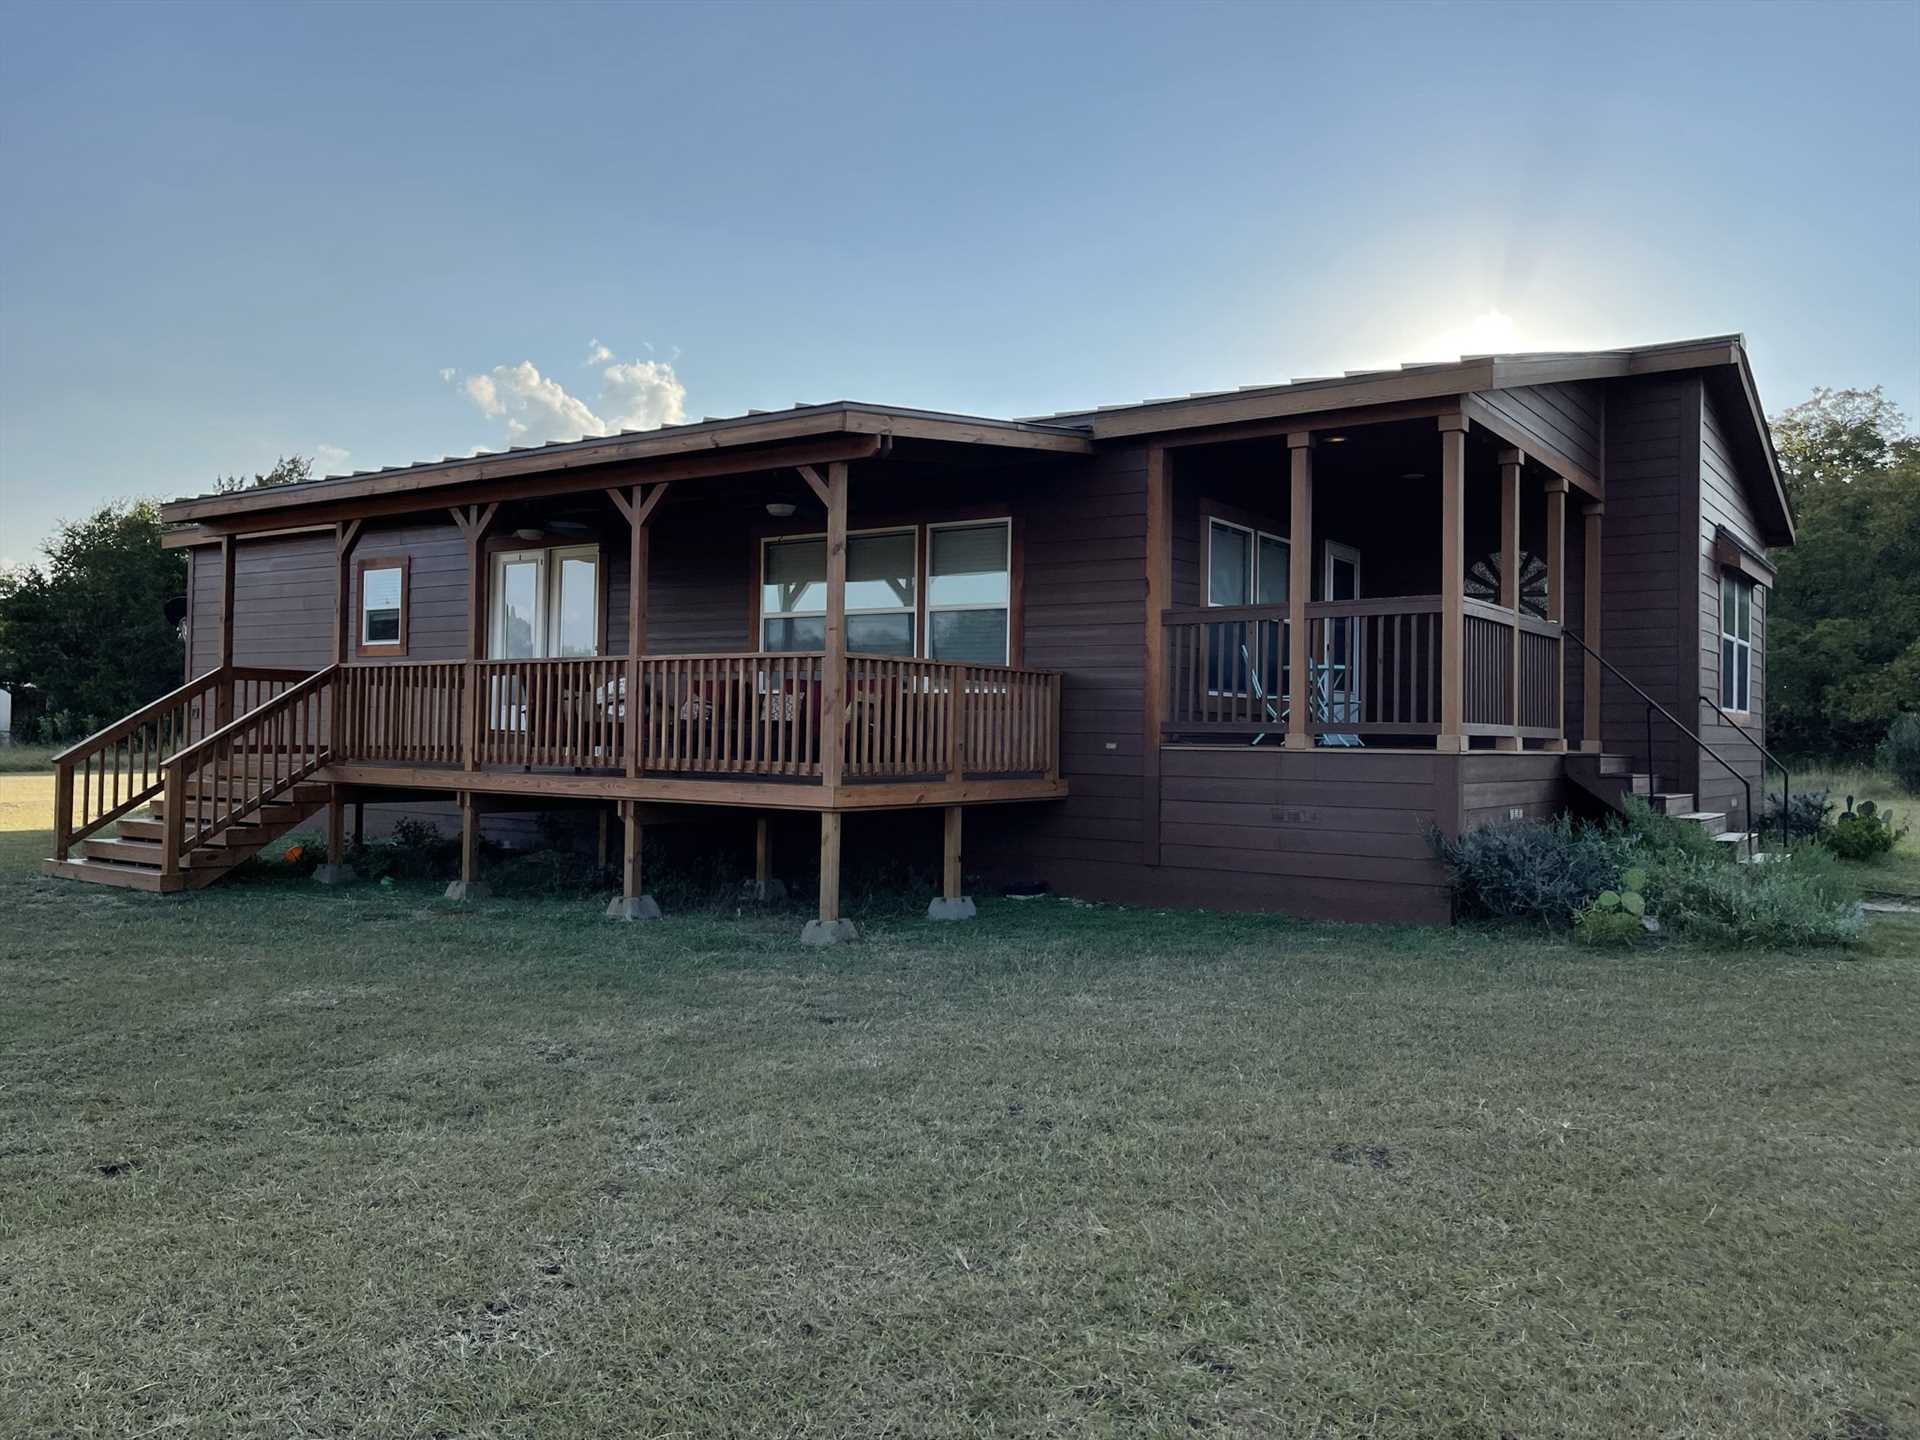 The brand-new deck is nicely shaded, and offers outstanding views of wildlife and the surrounding Hill Country.The brand-new deck is nicely shaded, and offers outstanding views of wildlife and the surrounding Hill Country.